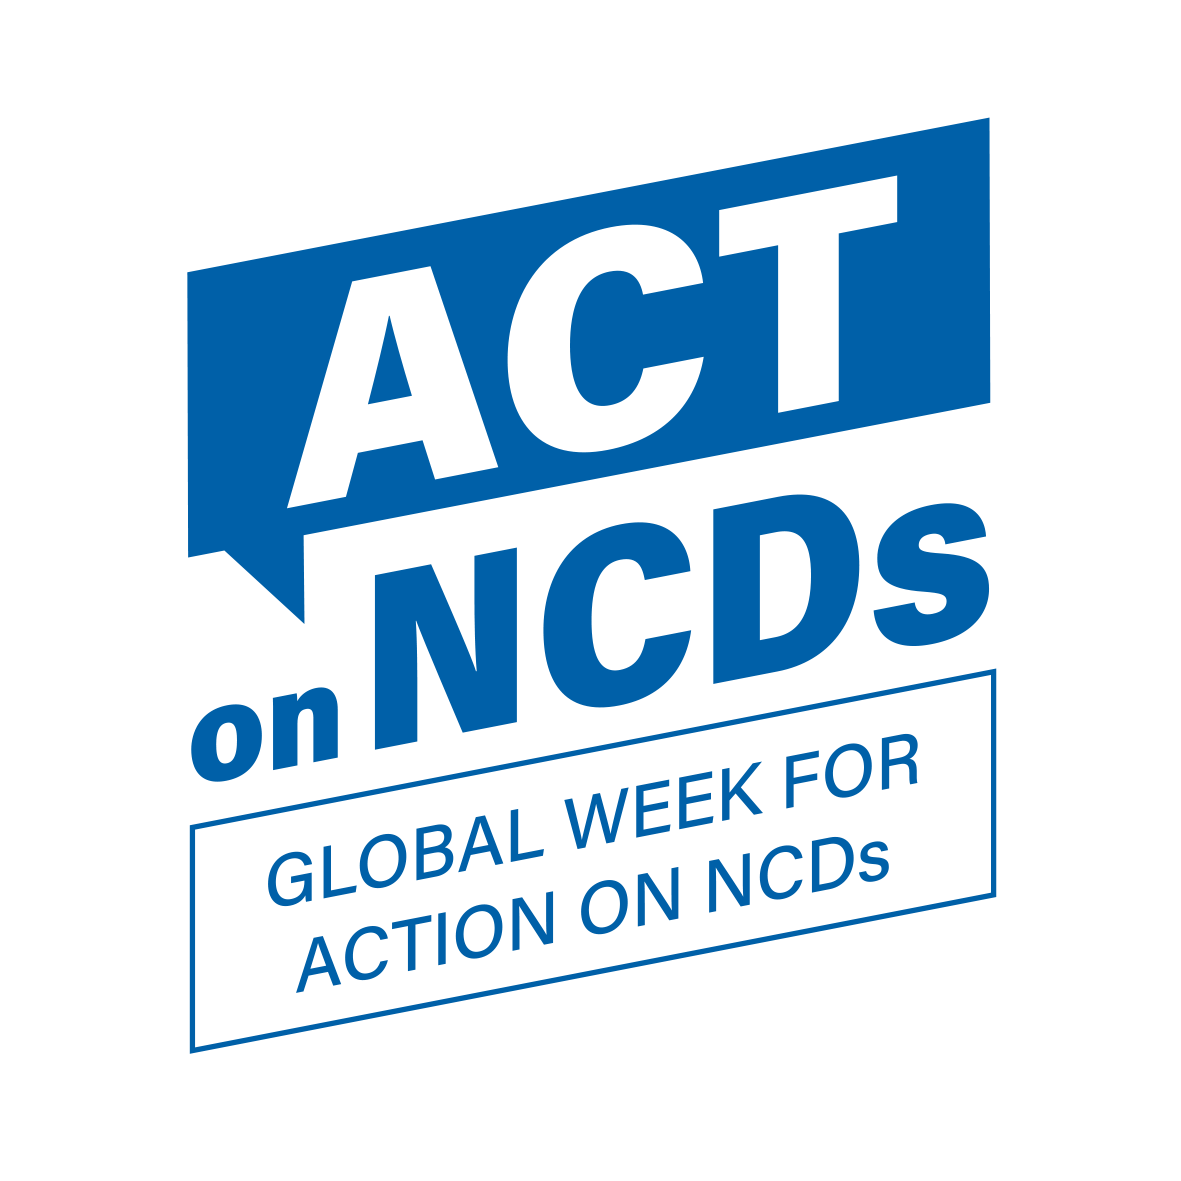 Act on NCDS logo blue